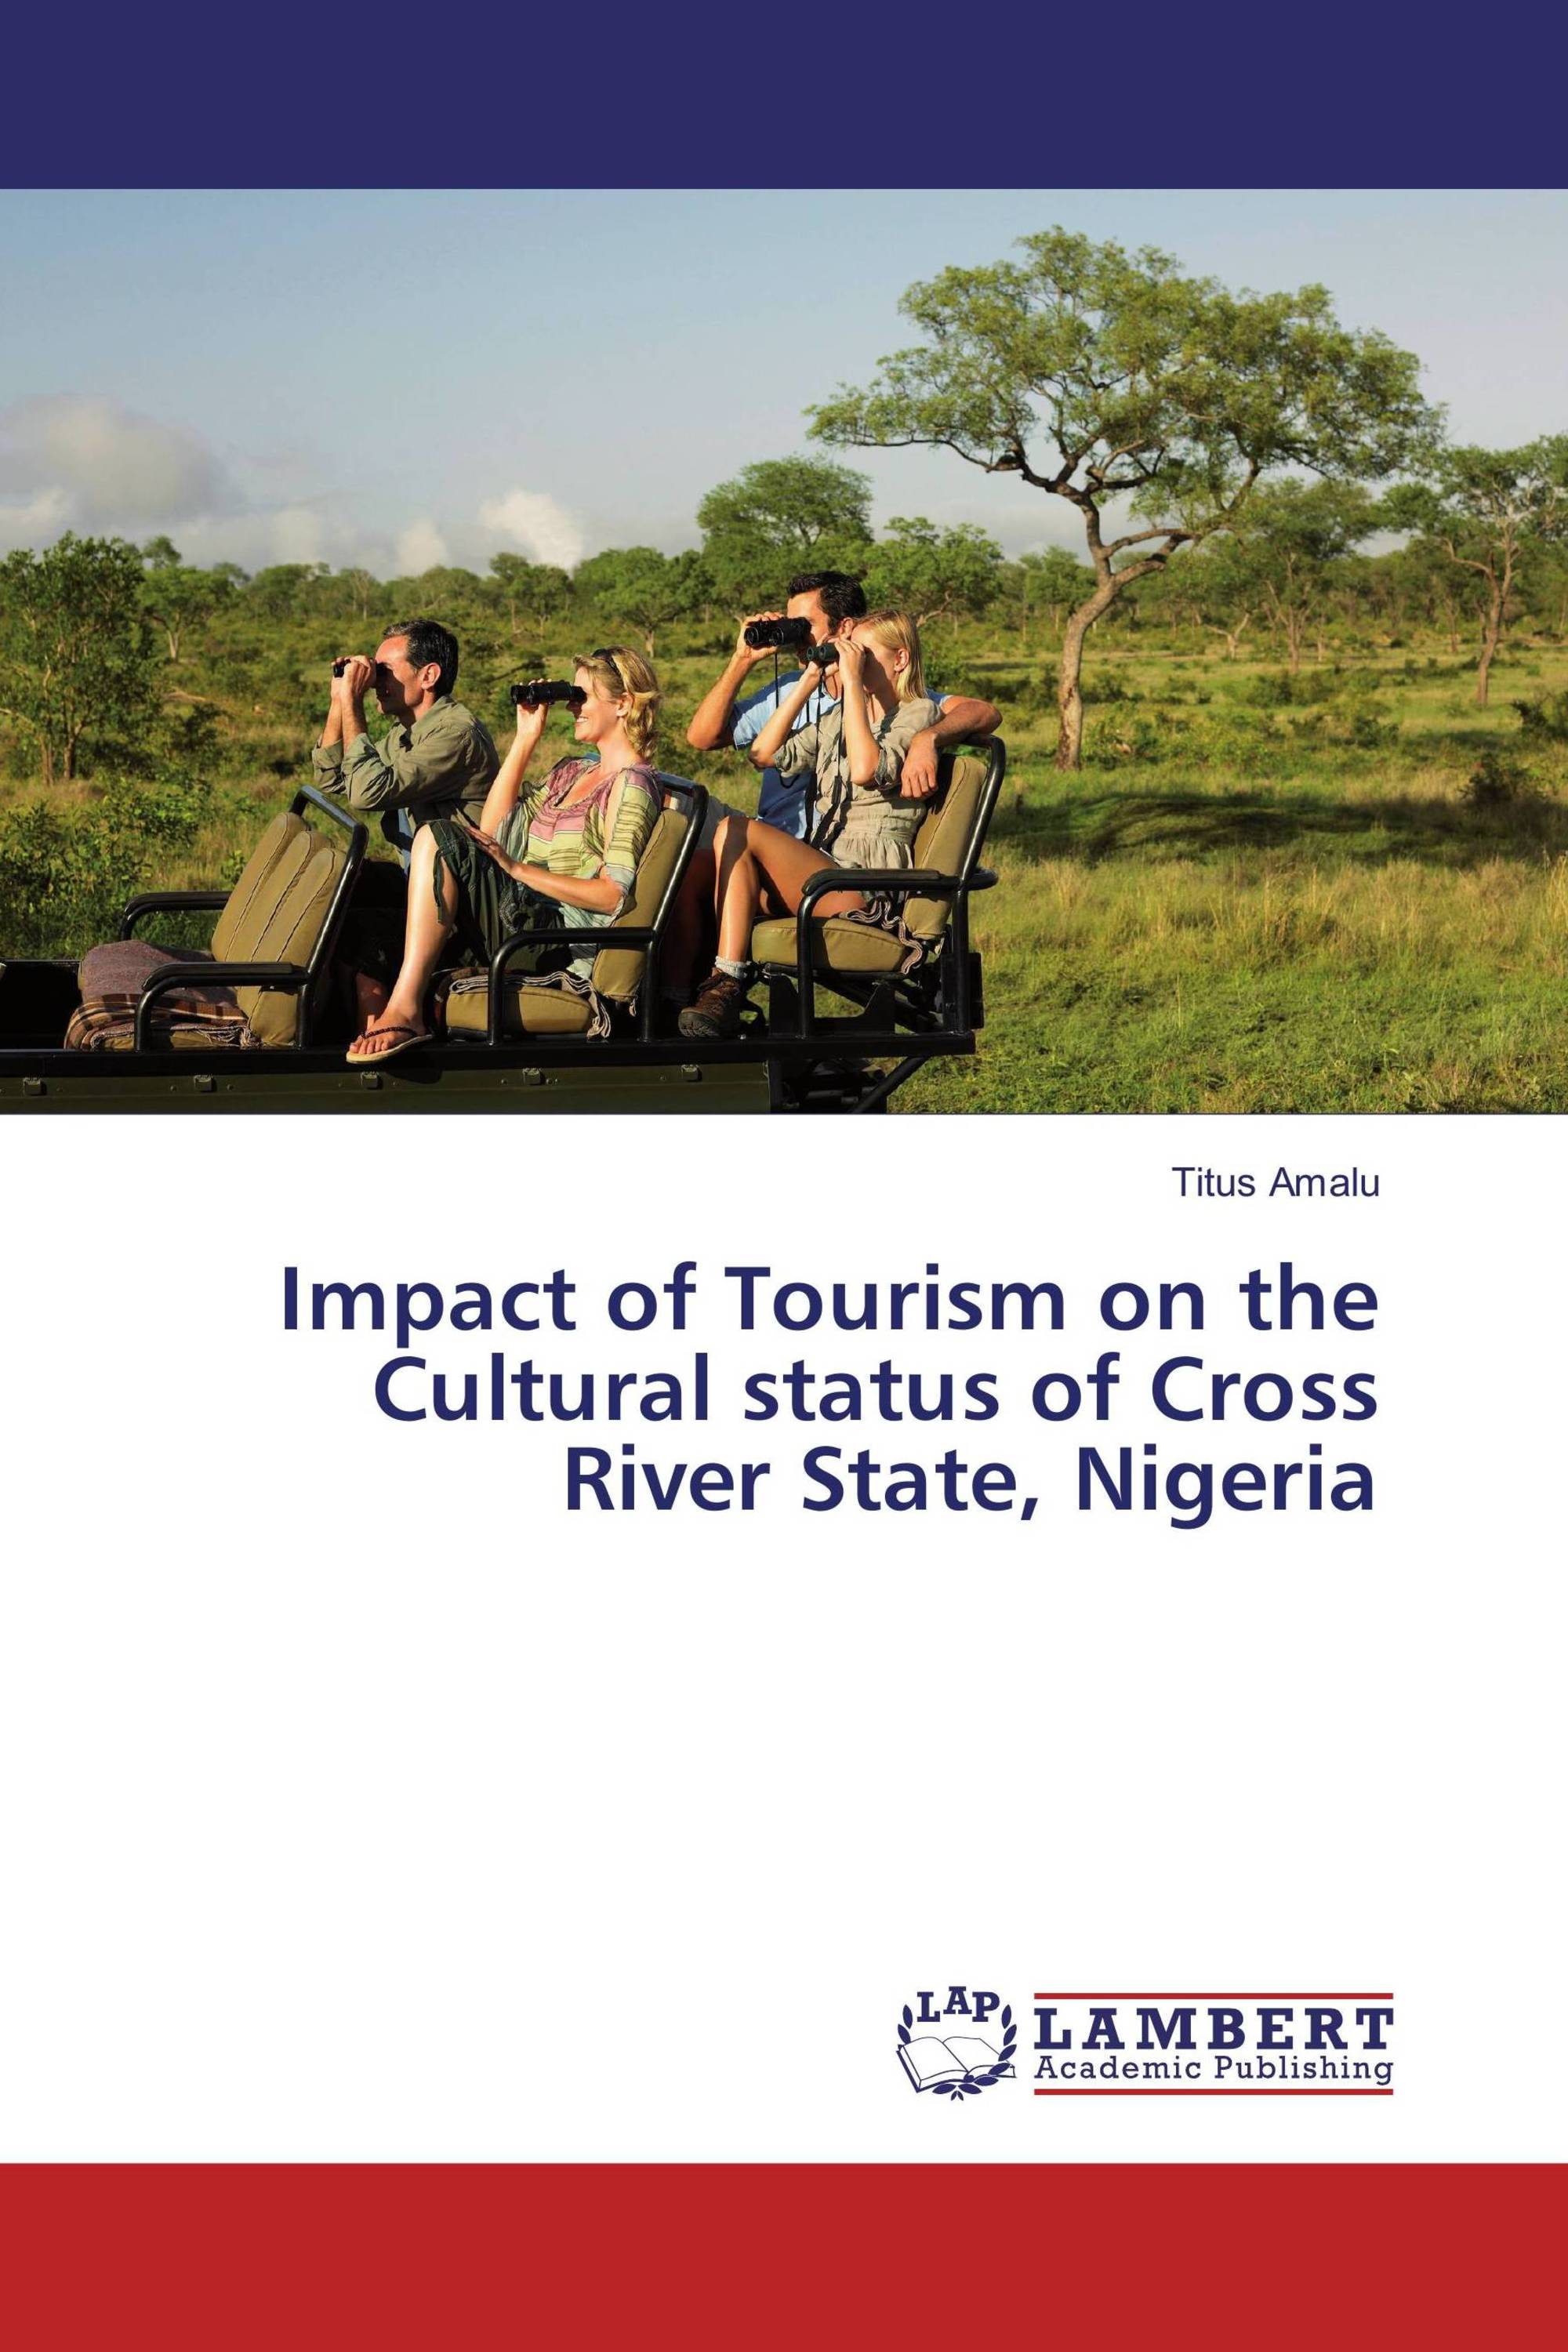 the cultural impacts of tourism on the The study of the effect that tourism has on environment and communities involved is relatively new impacts are not easily categorized, having direct and indirect components.